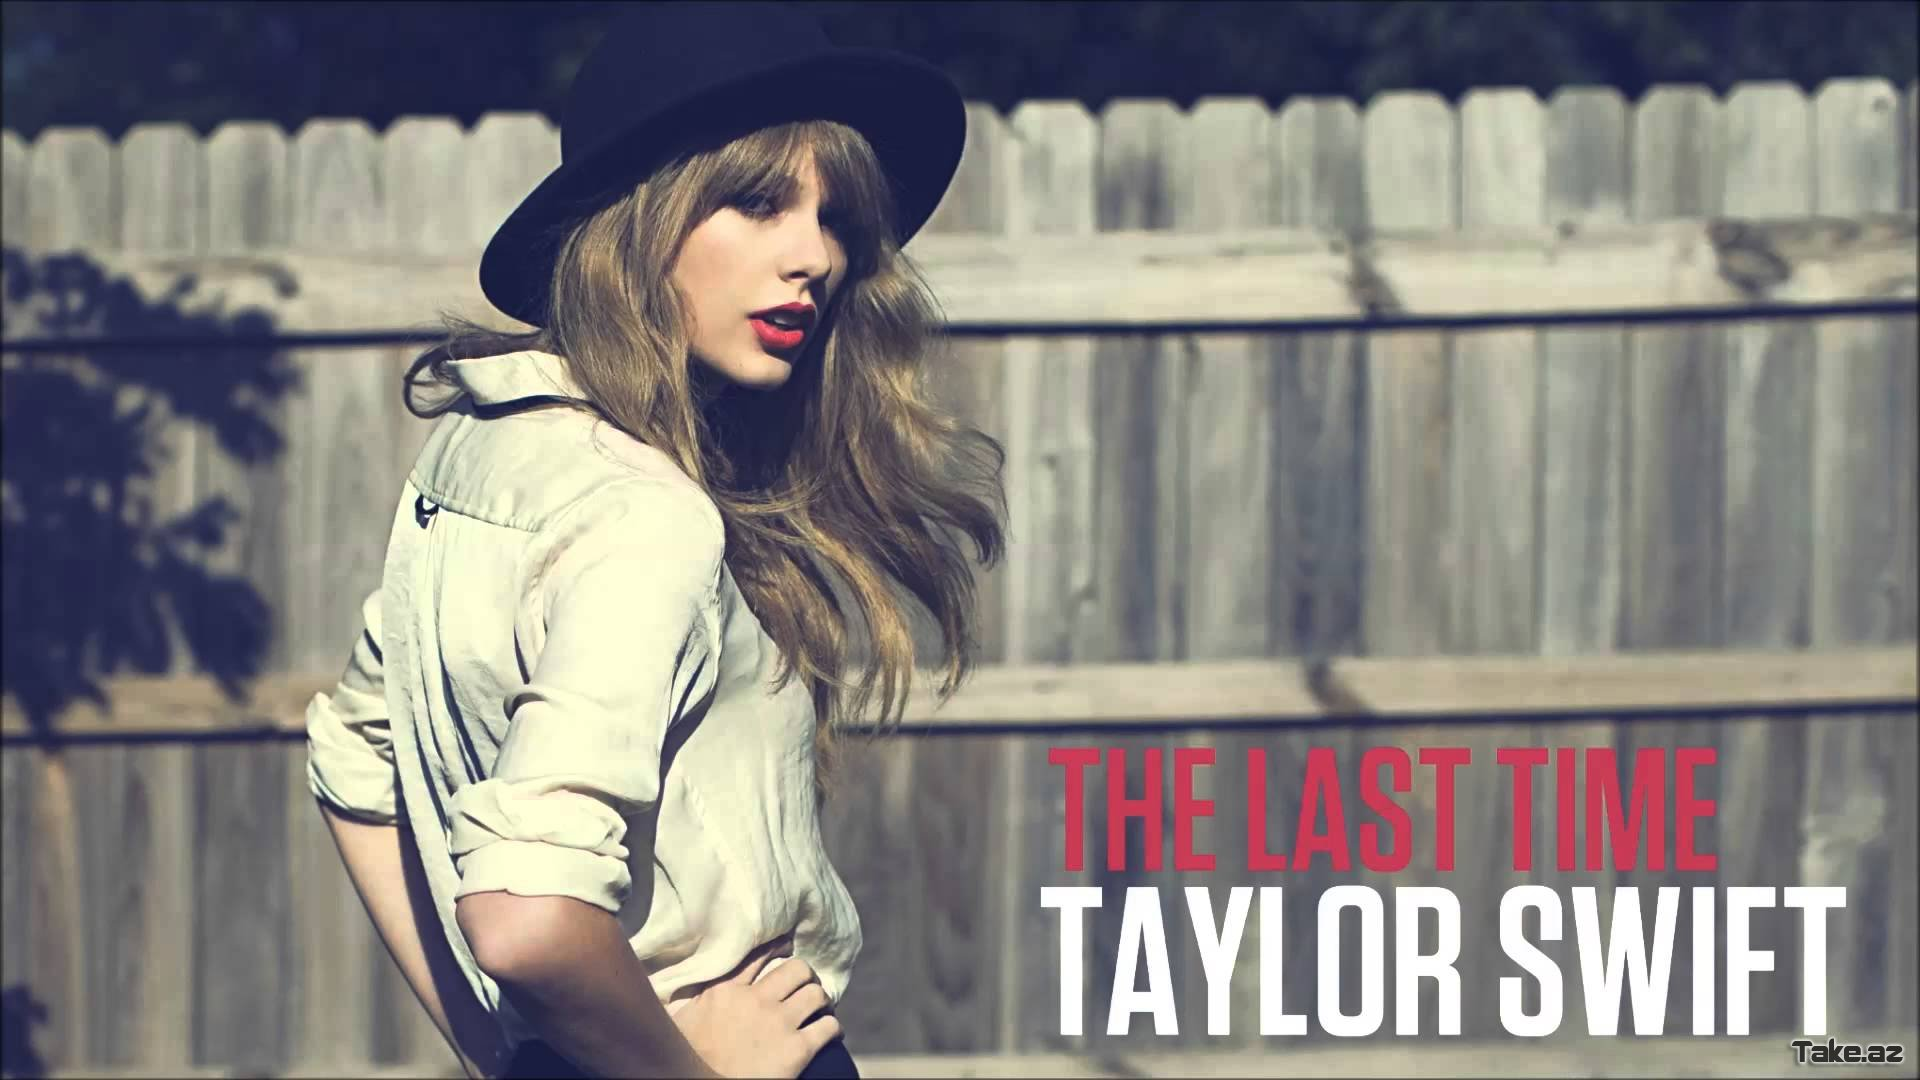 Taylor Swift ft. Gary Lightbody - The Last Time